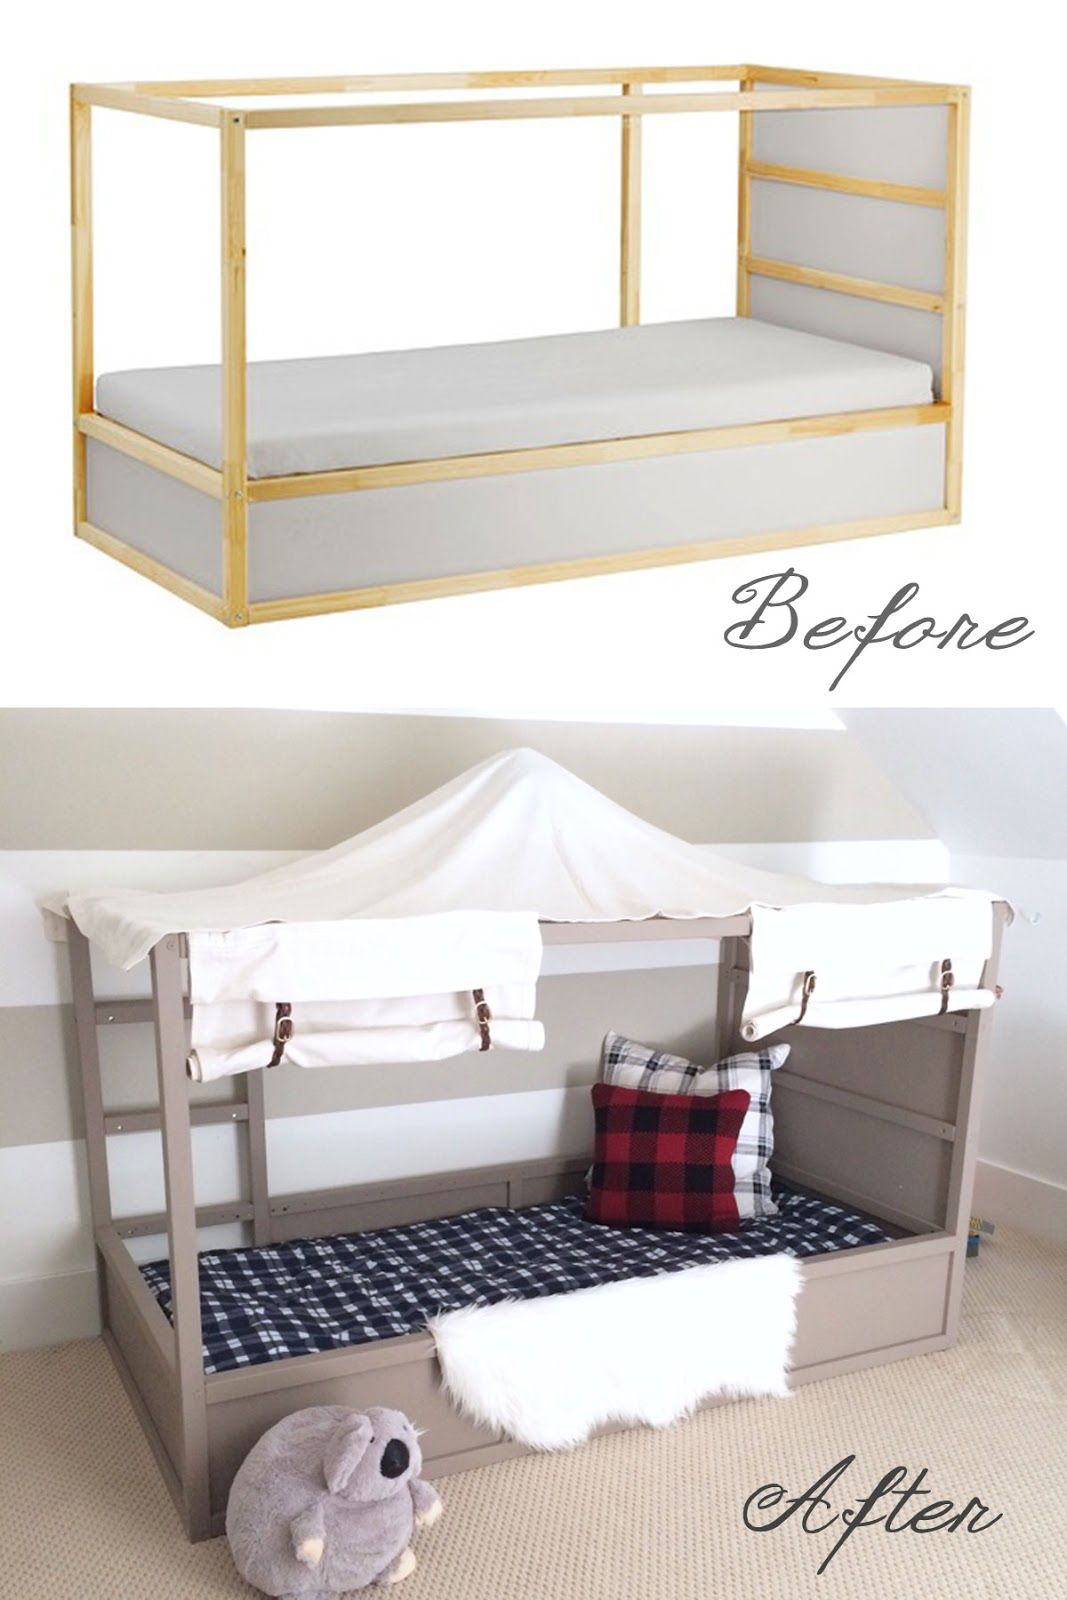 Harlow Thistle Home Design Lifestyle Diy Ikea Kura Bed Hack Diy Boy Canopy Bed Ikea Kura Bed Boys Bed Canopy Ikea Toddler Bed